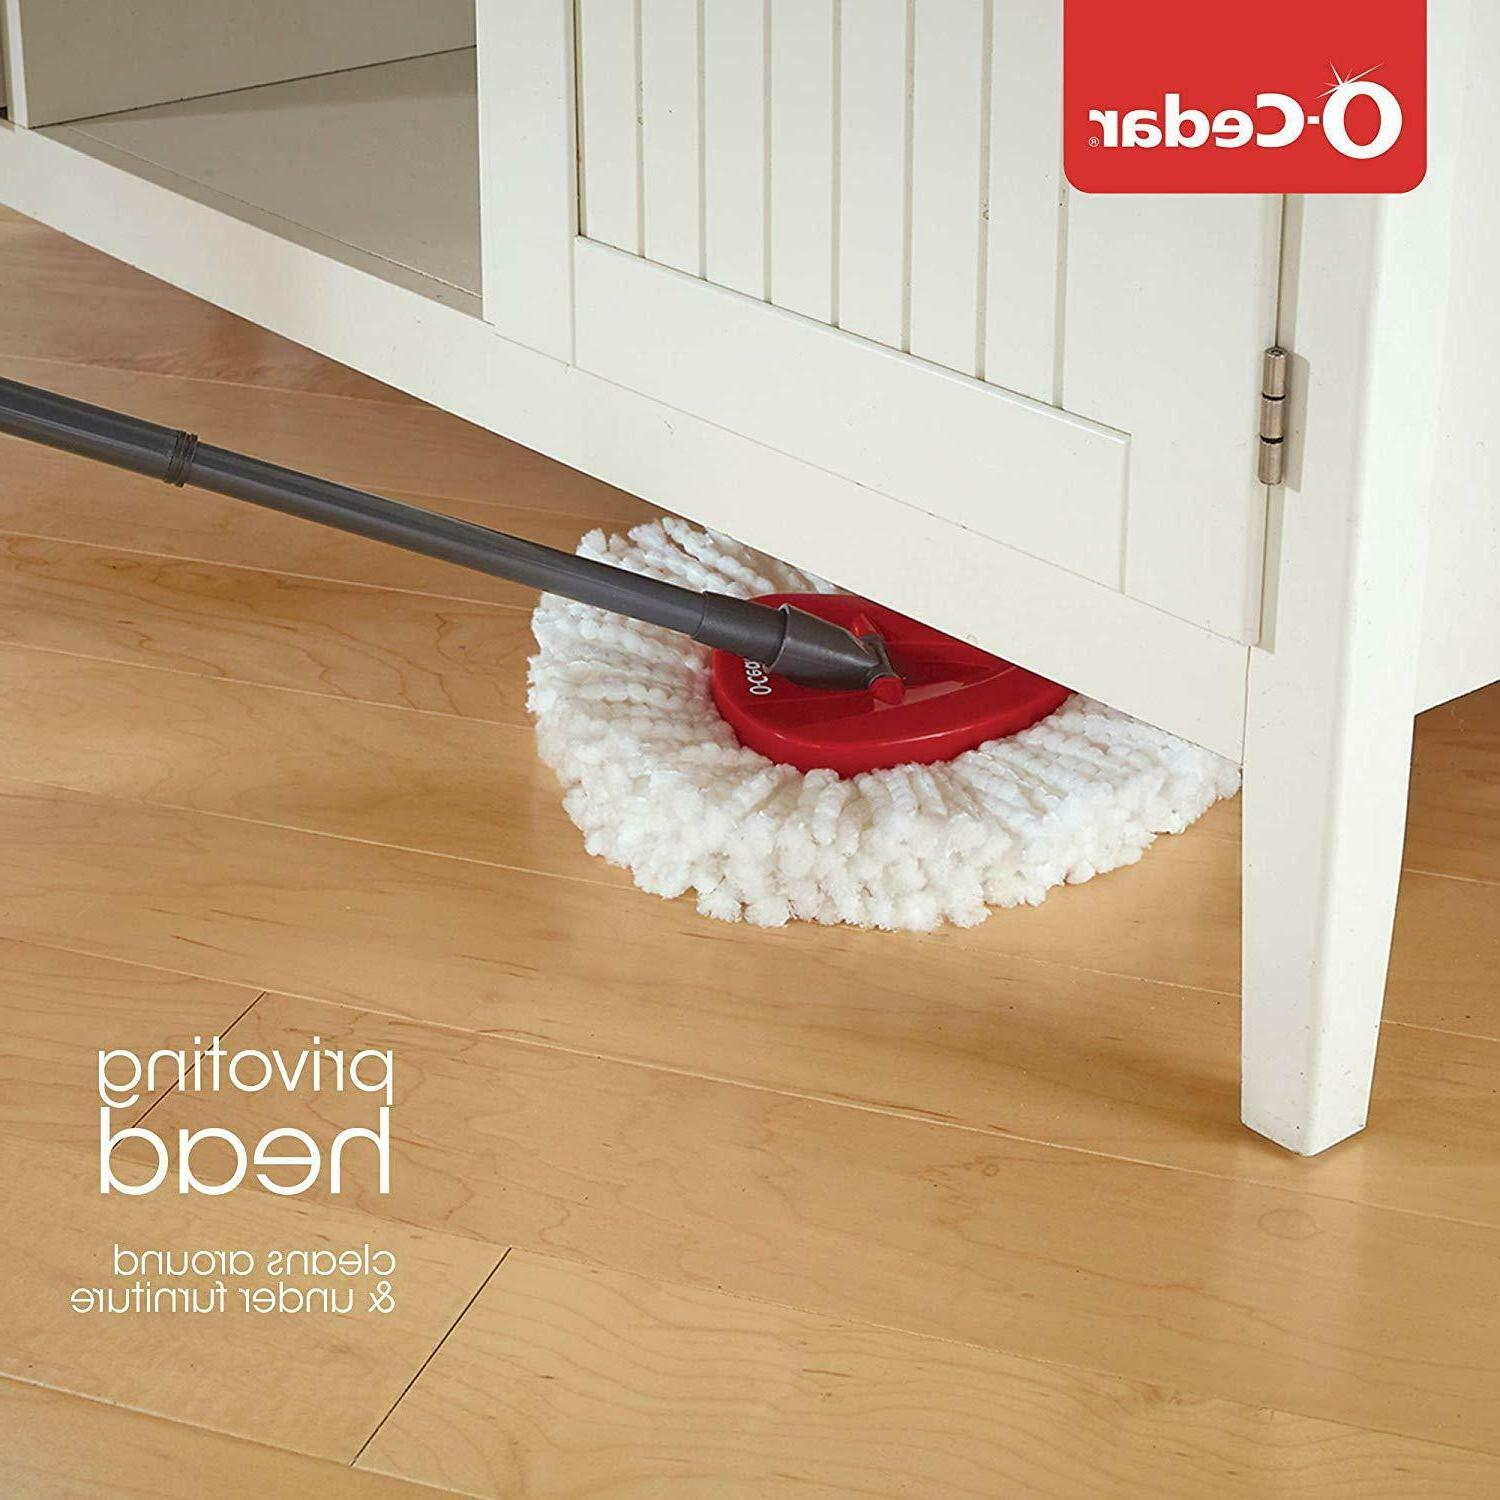 O-Cedar Easy Wring Mop and Bucket Cleaning for Floors